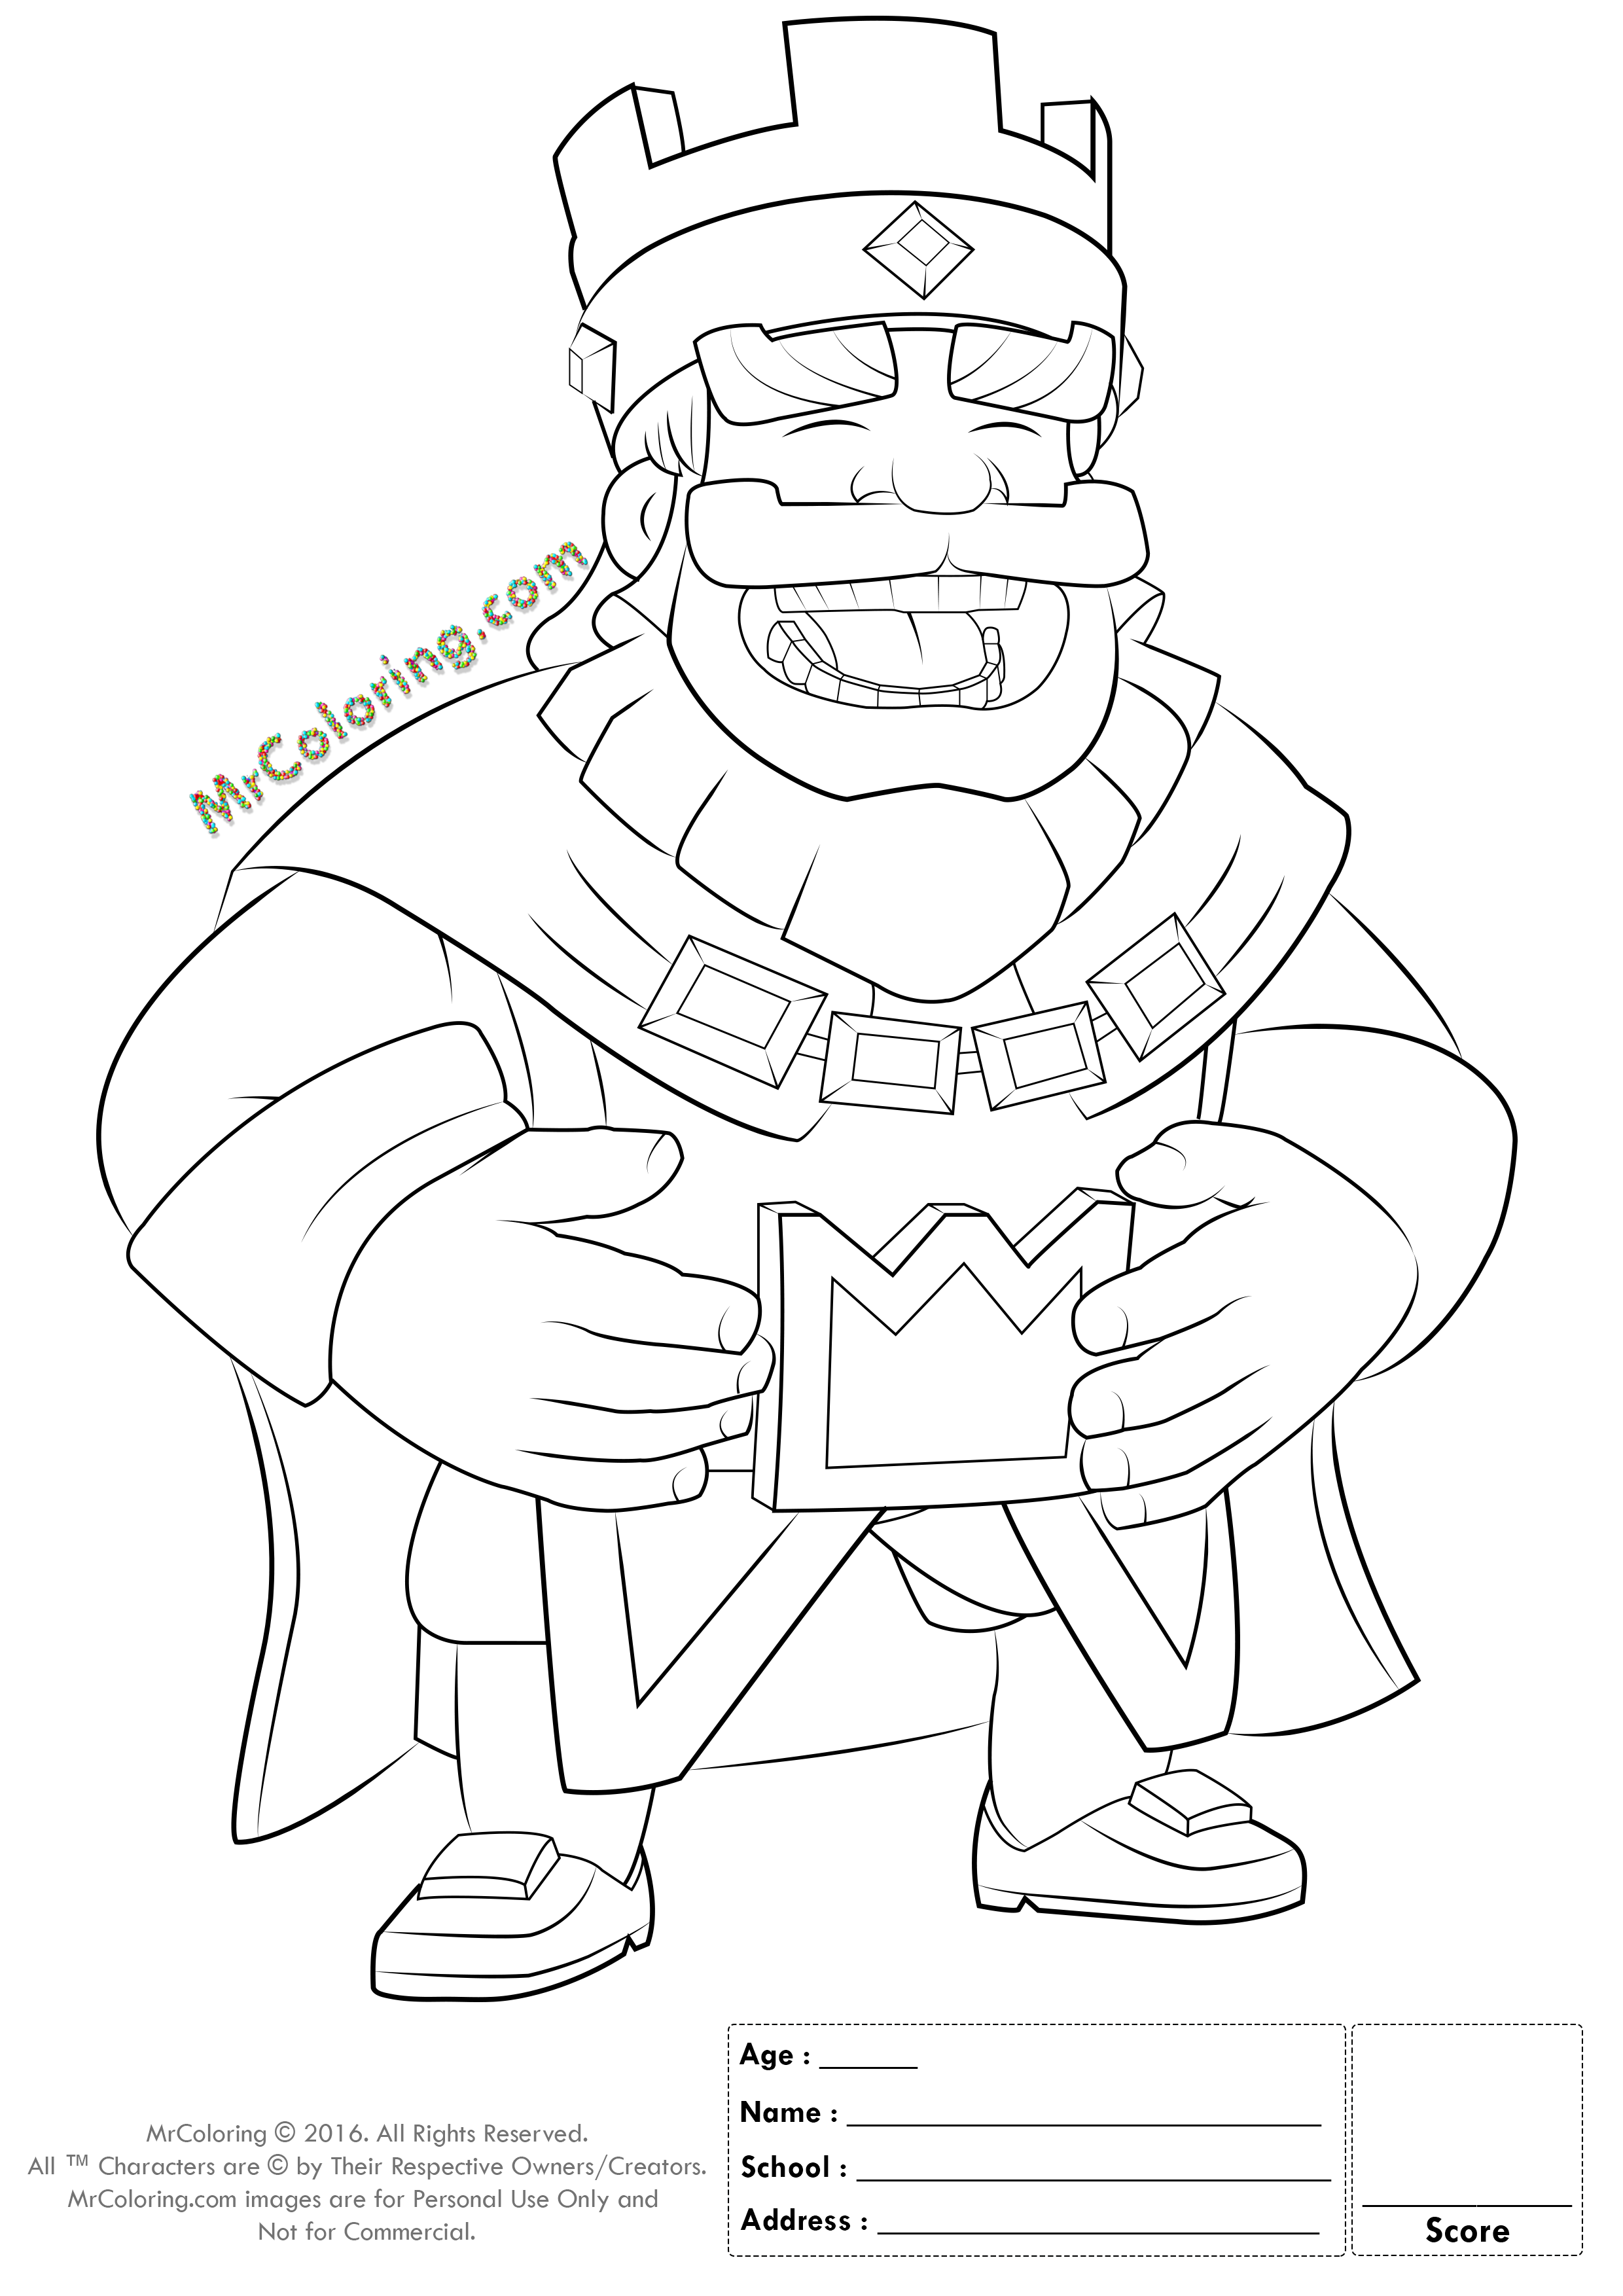 Printable Blue King Clash Royale Online Coloring Pages 1 Free